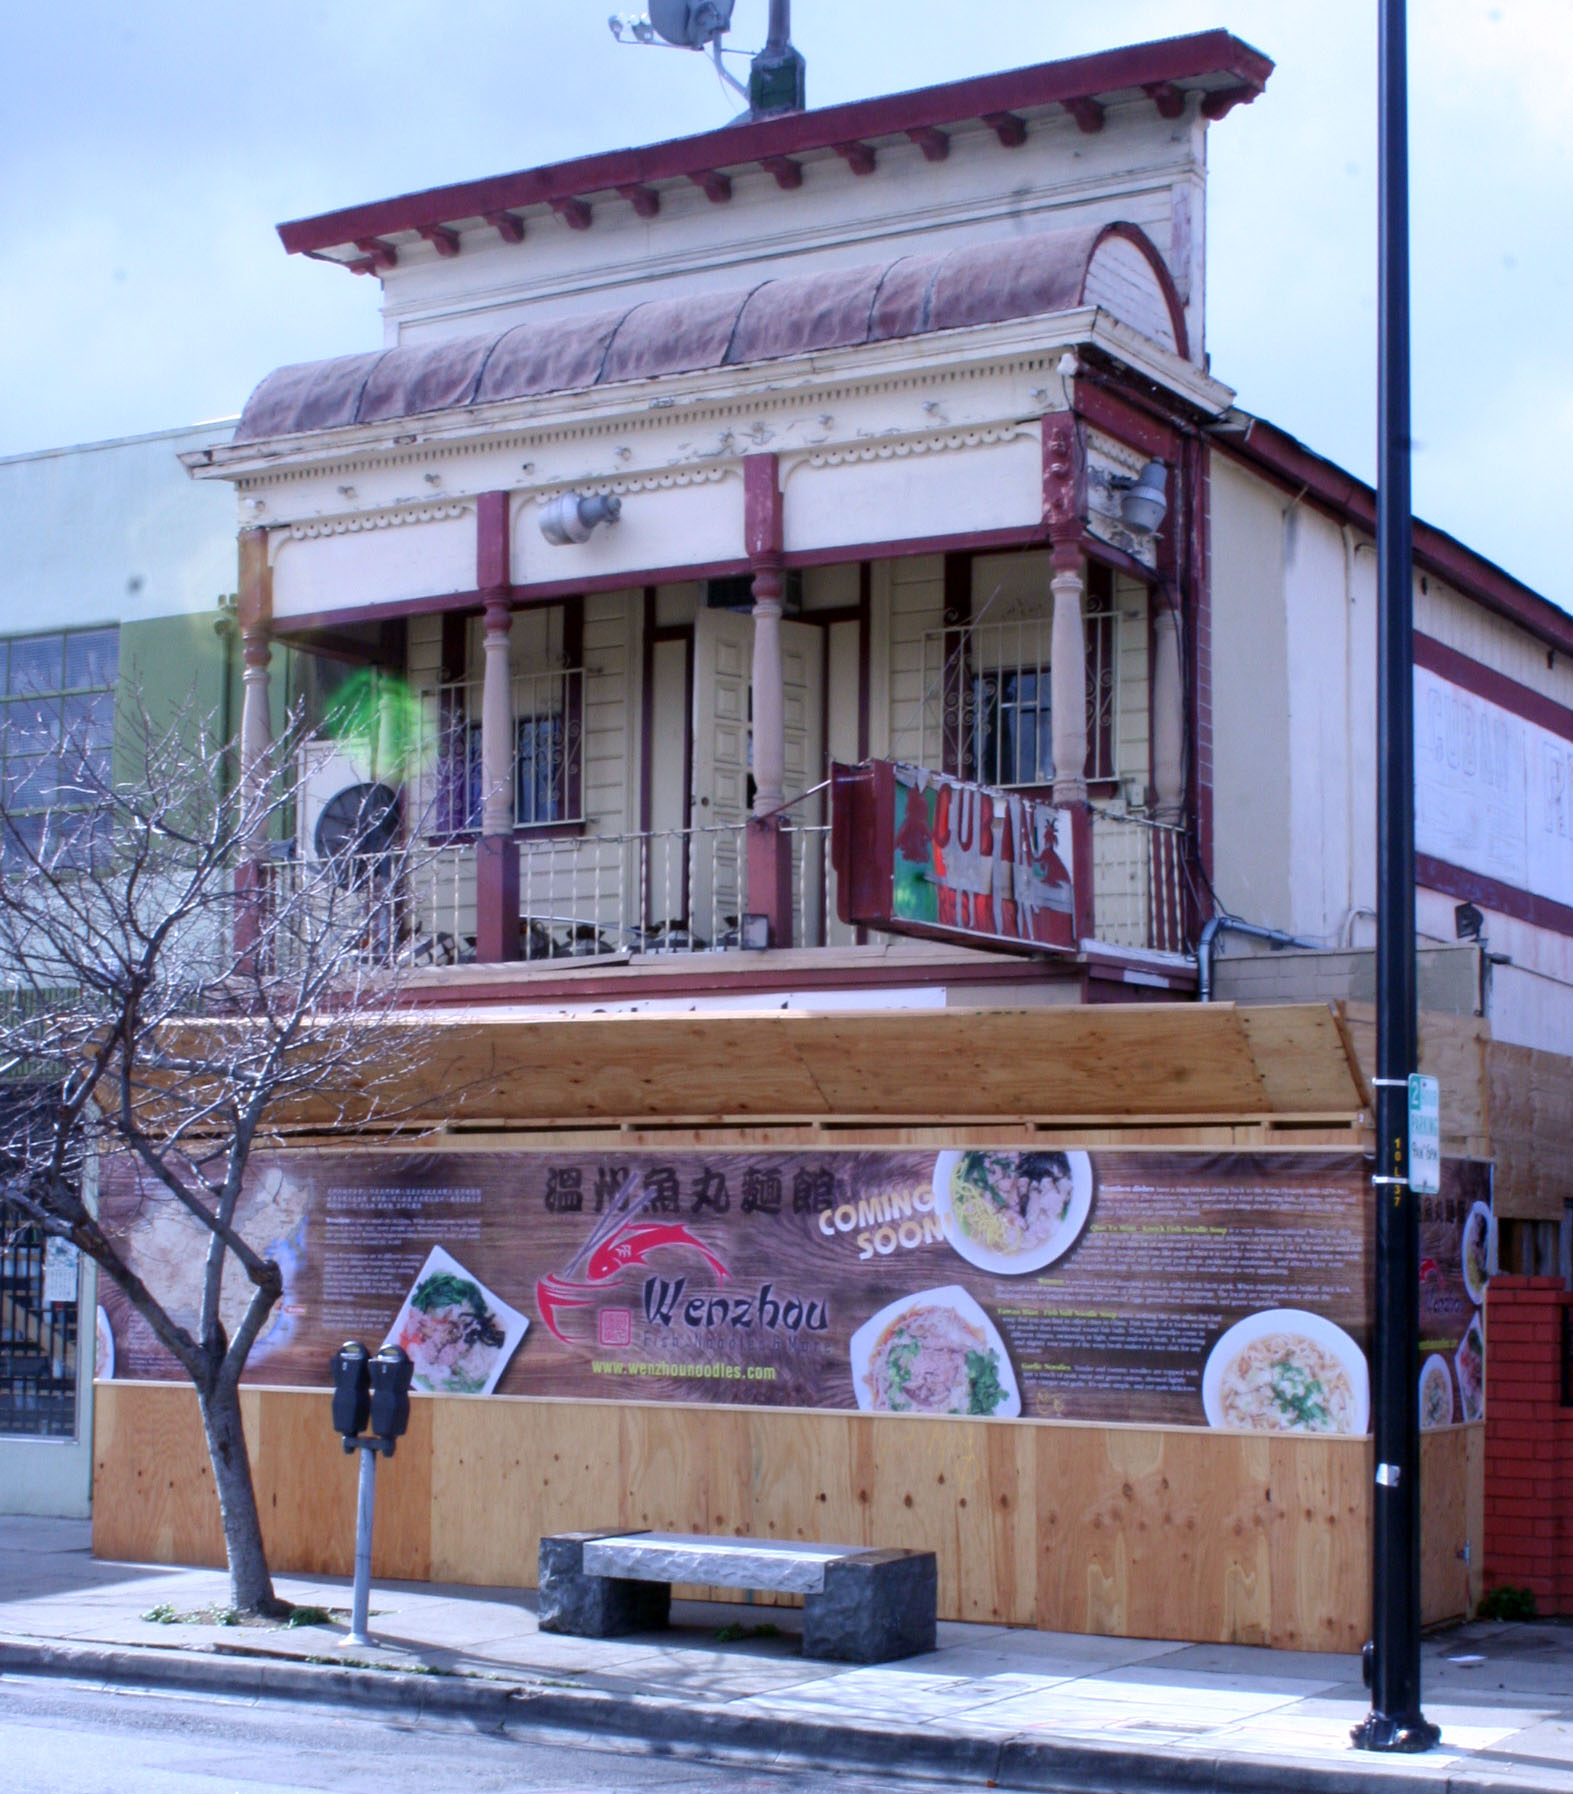 Wenzhou Noodle House Enters Construction Phase Japantown